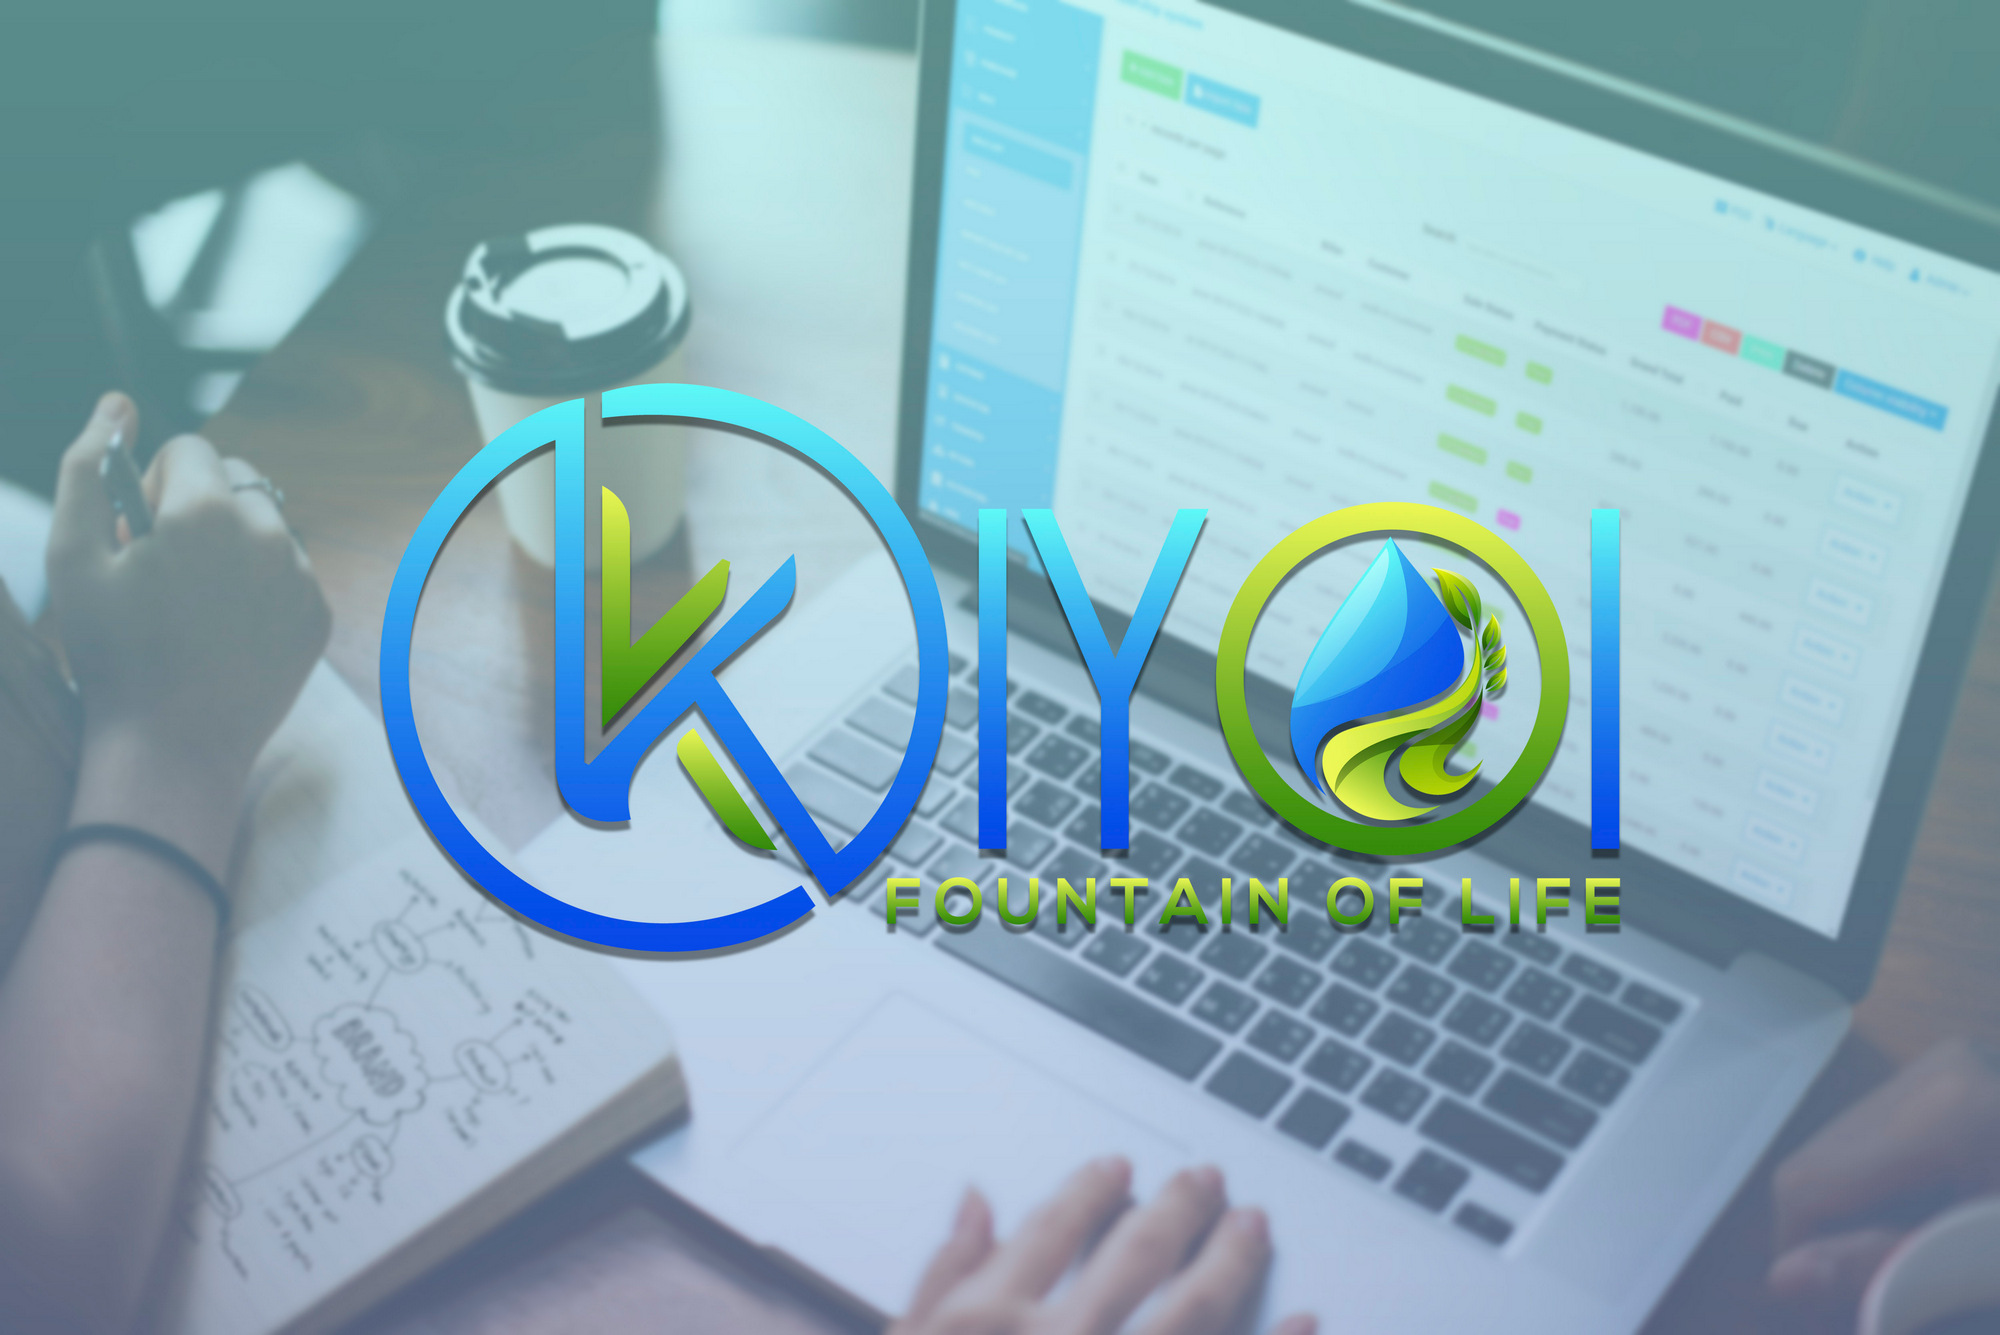 Central Management Information System for KIYOI Cambodia